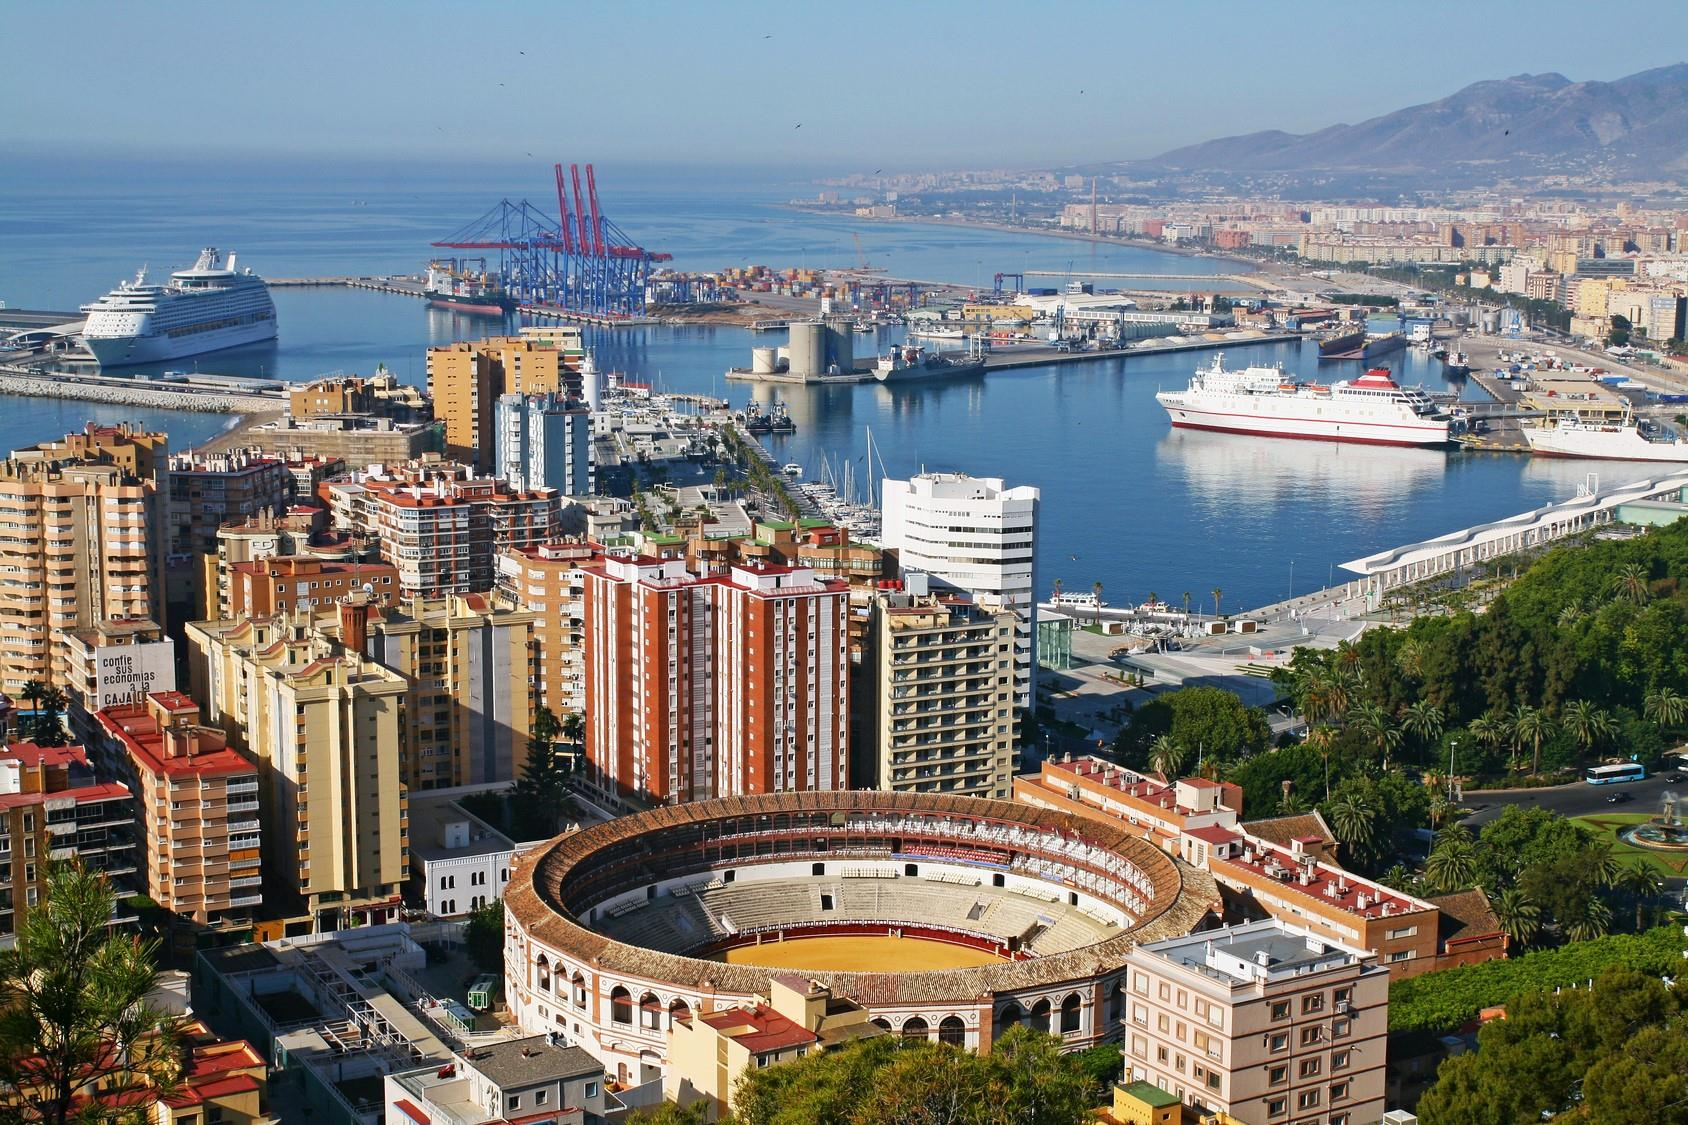 Chief Architect Plans Cycle Routes And Urban Bike Tours In Malaga